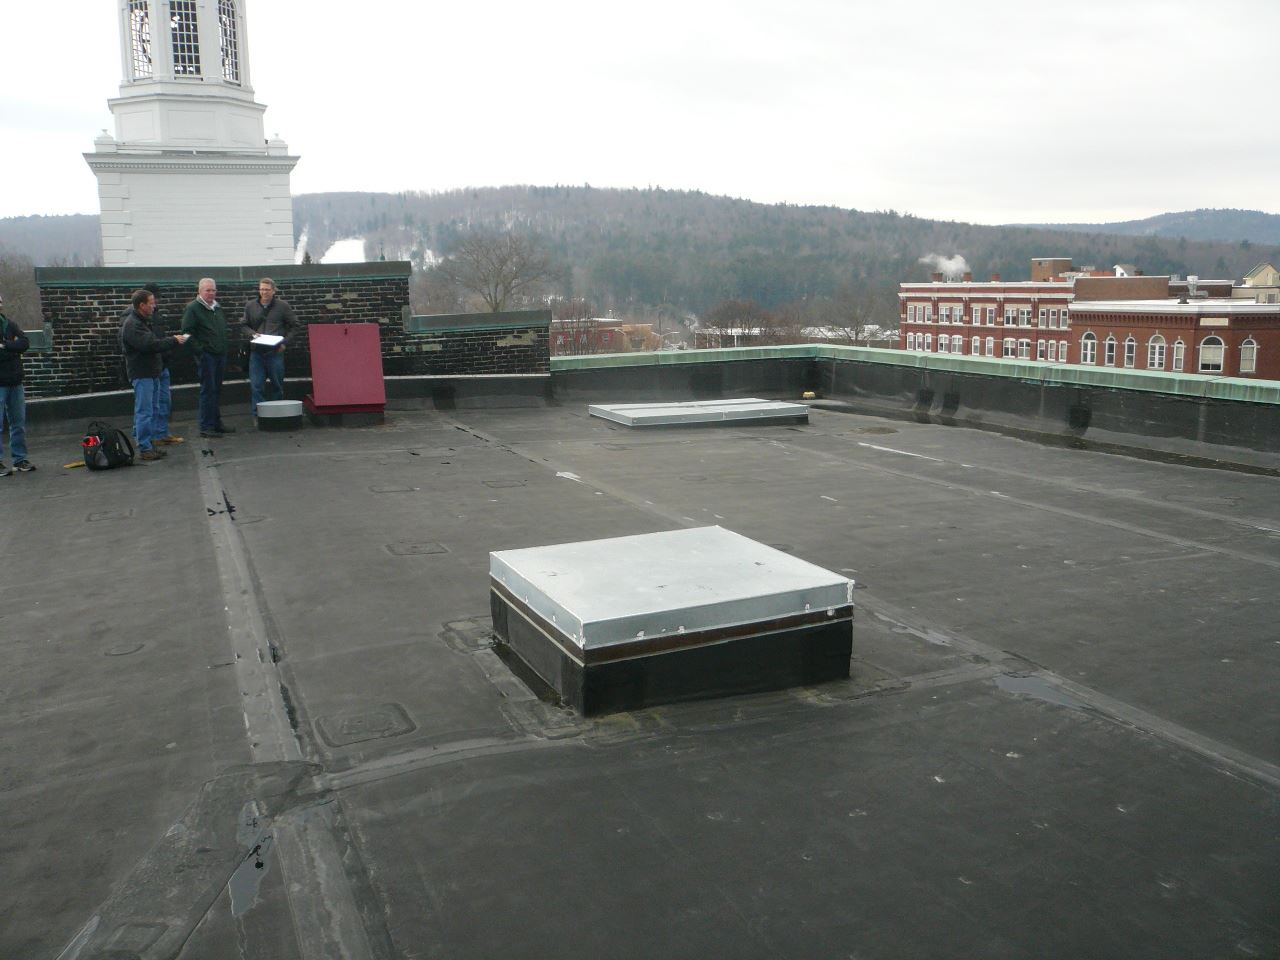 photo of Lebanon City Hall rooftop by clock tower